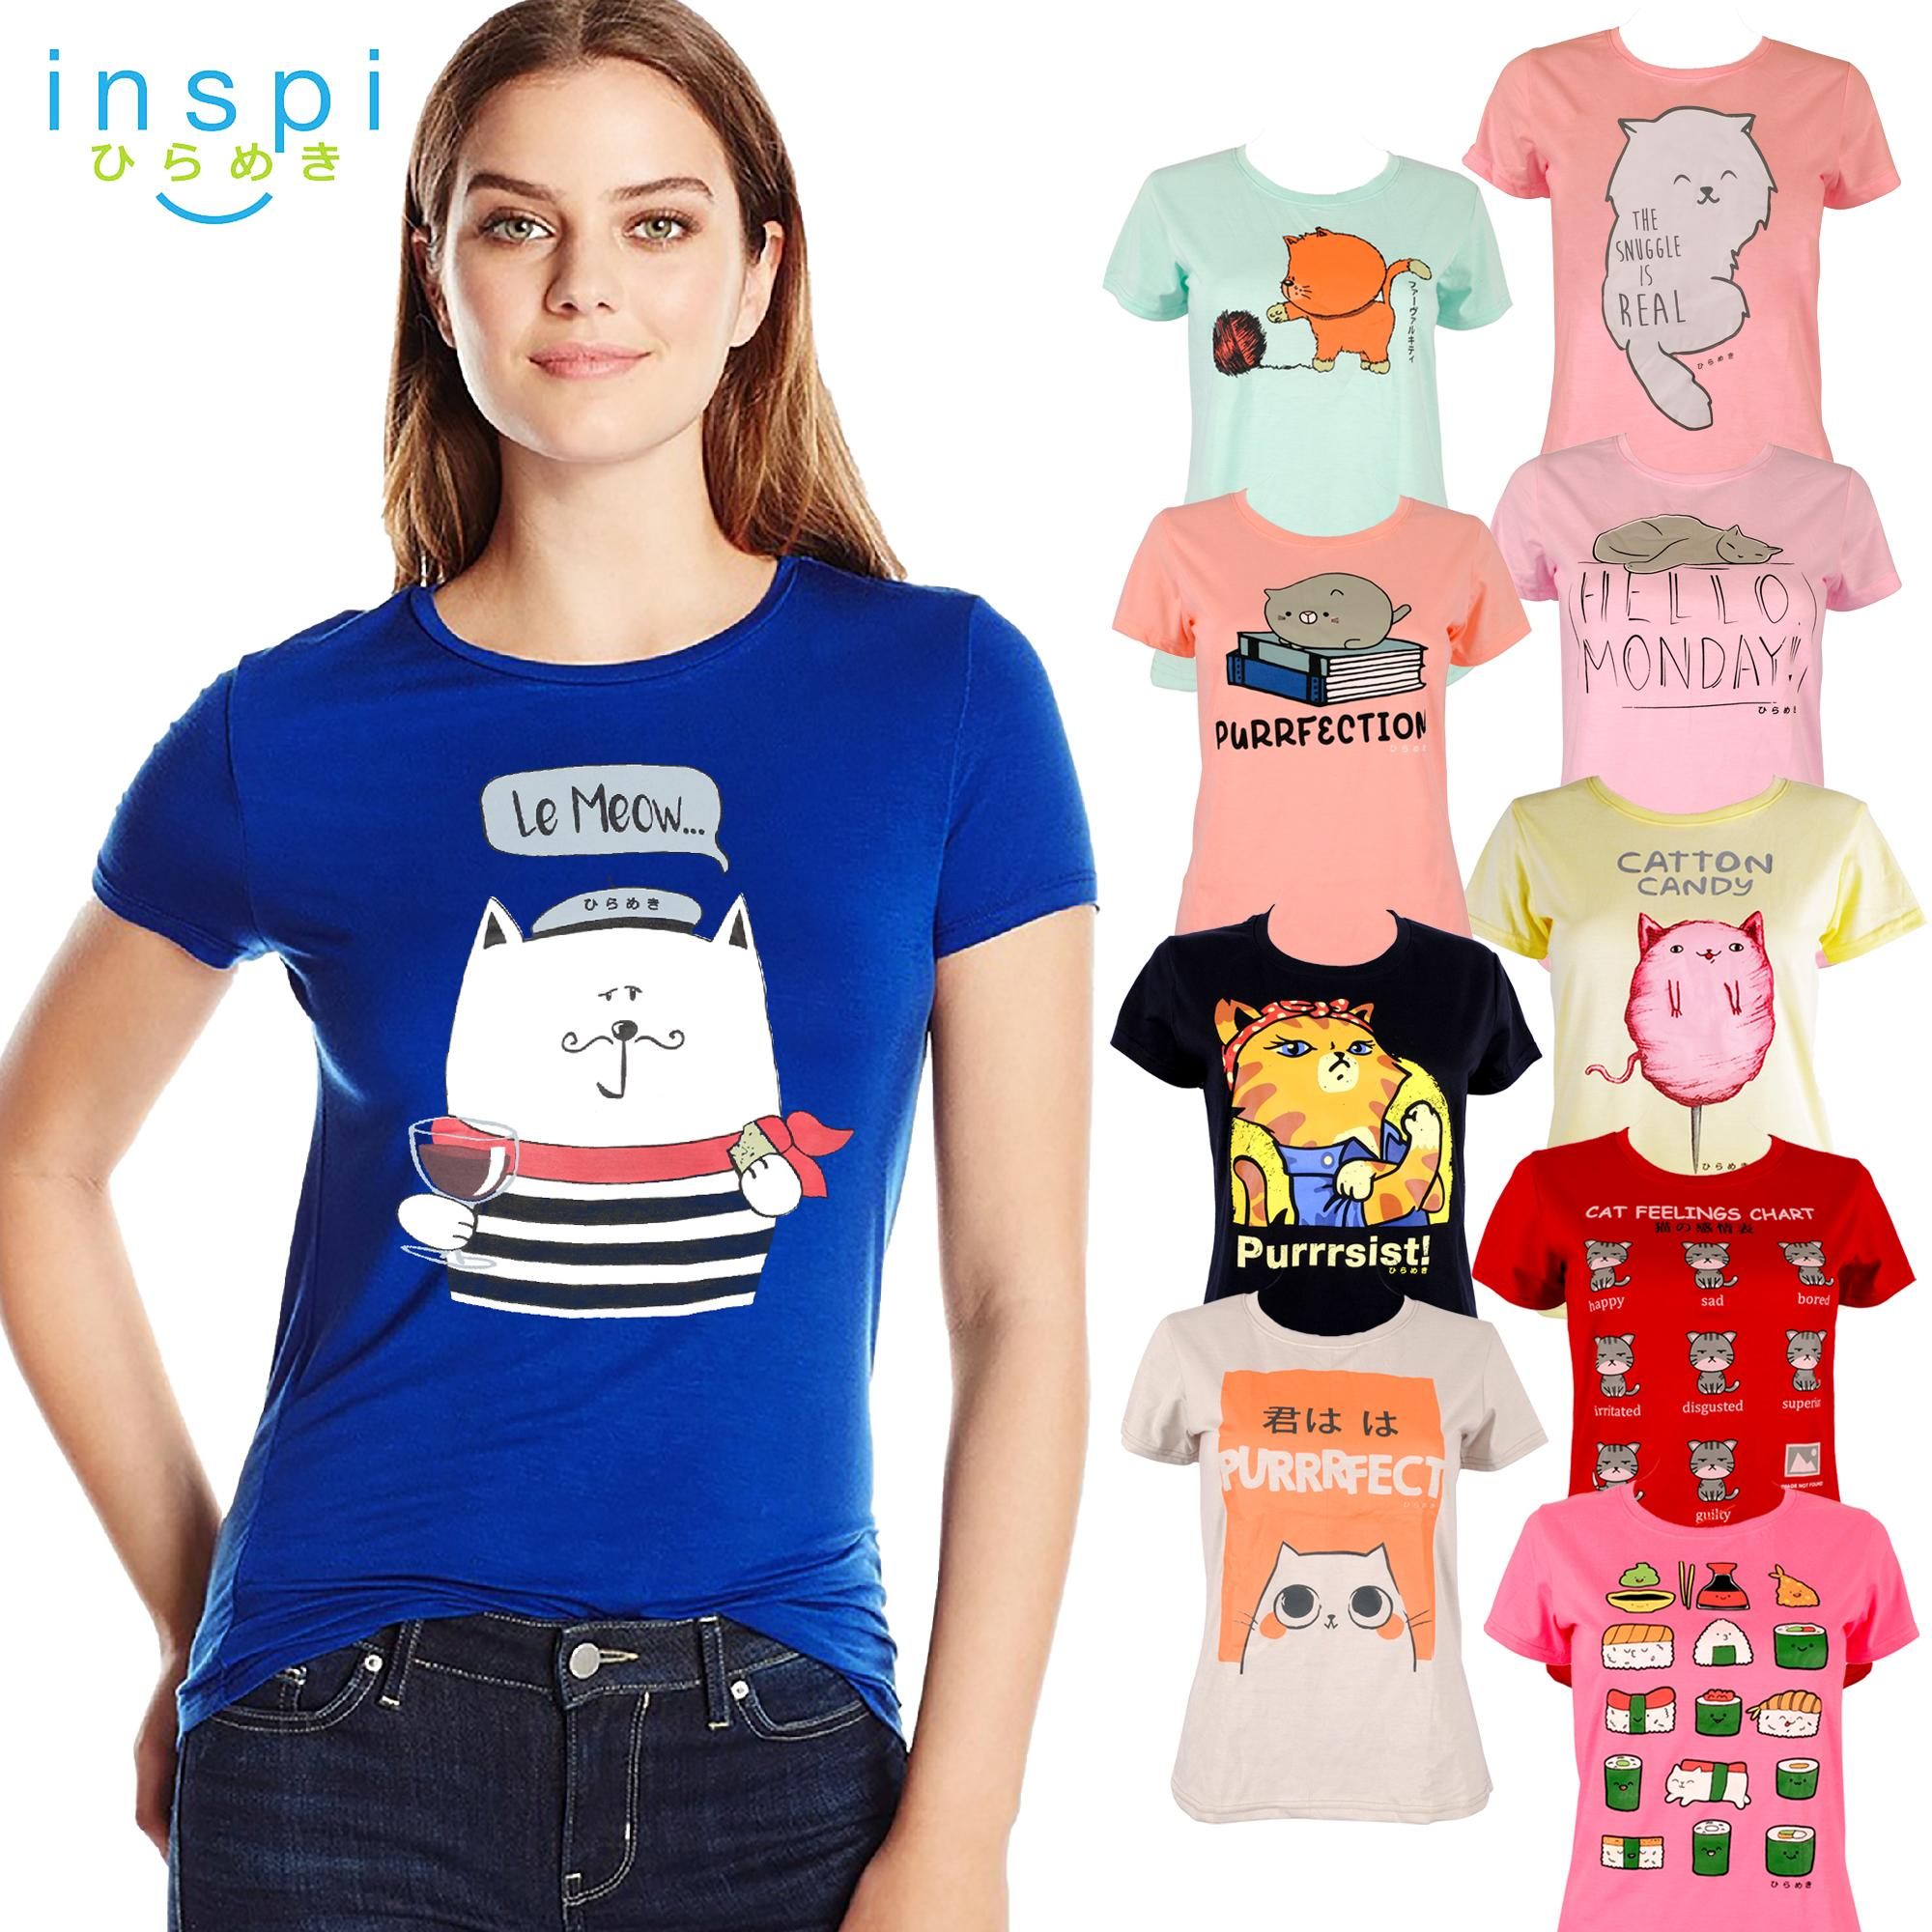 INSPI Tees Ladies Neko Collection tshirt printed graphic tee Ladies t shirt  shirts women tshirts for 90e80dc09f46